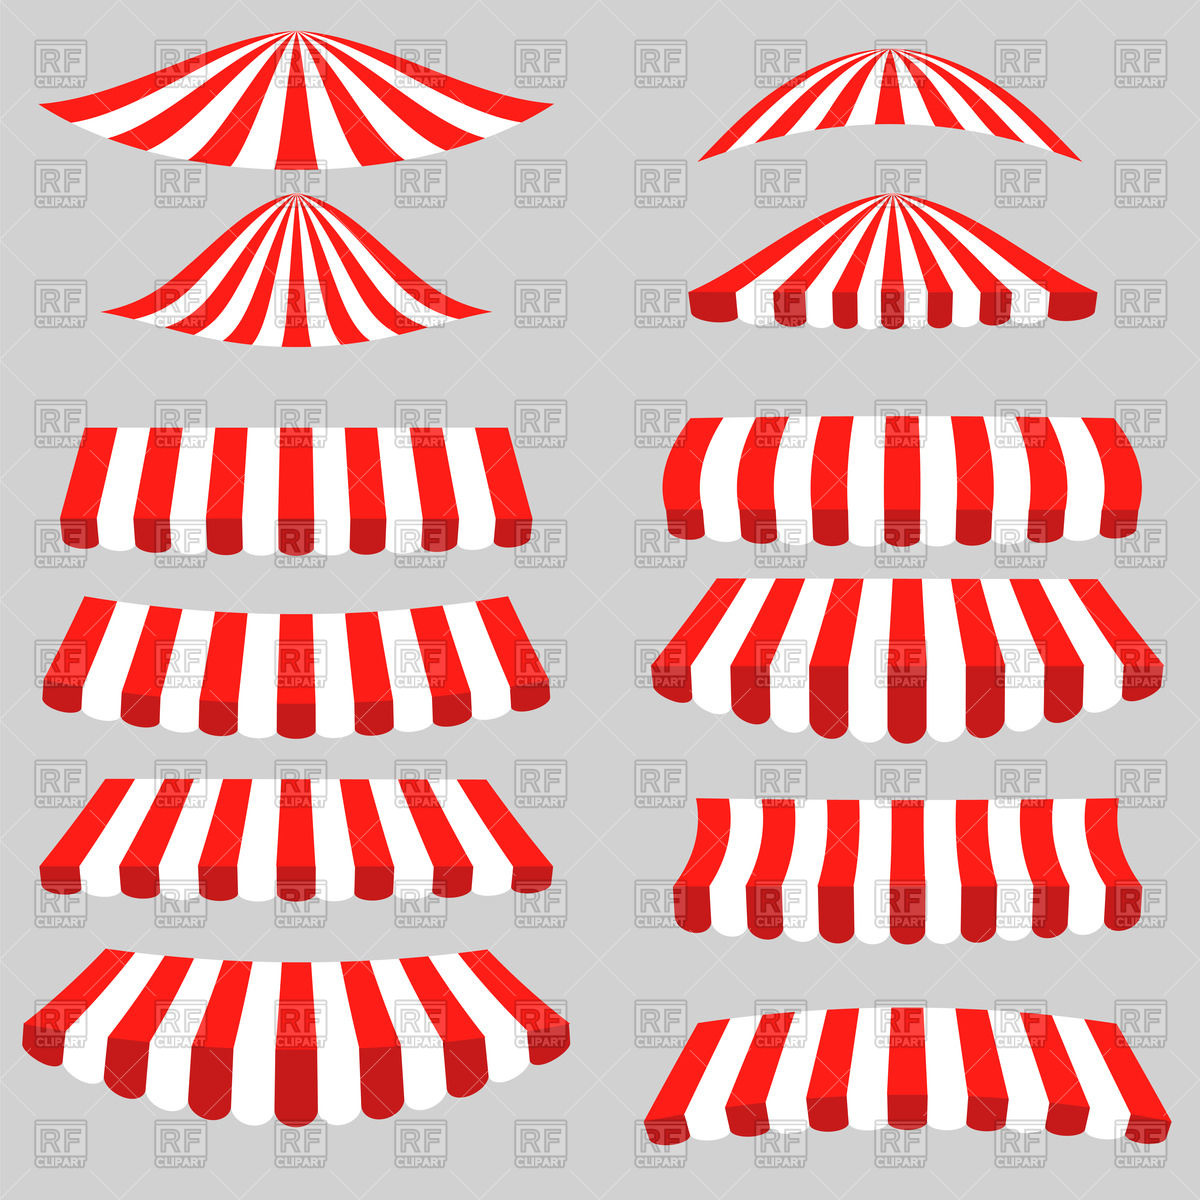 1200x1200 Set Of Red And White Tents Vector Image Vector Artwork Of